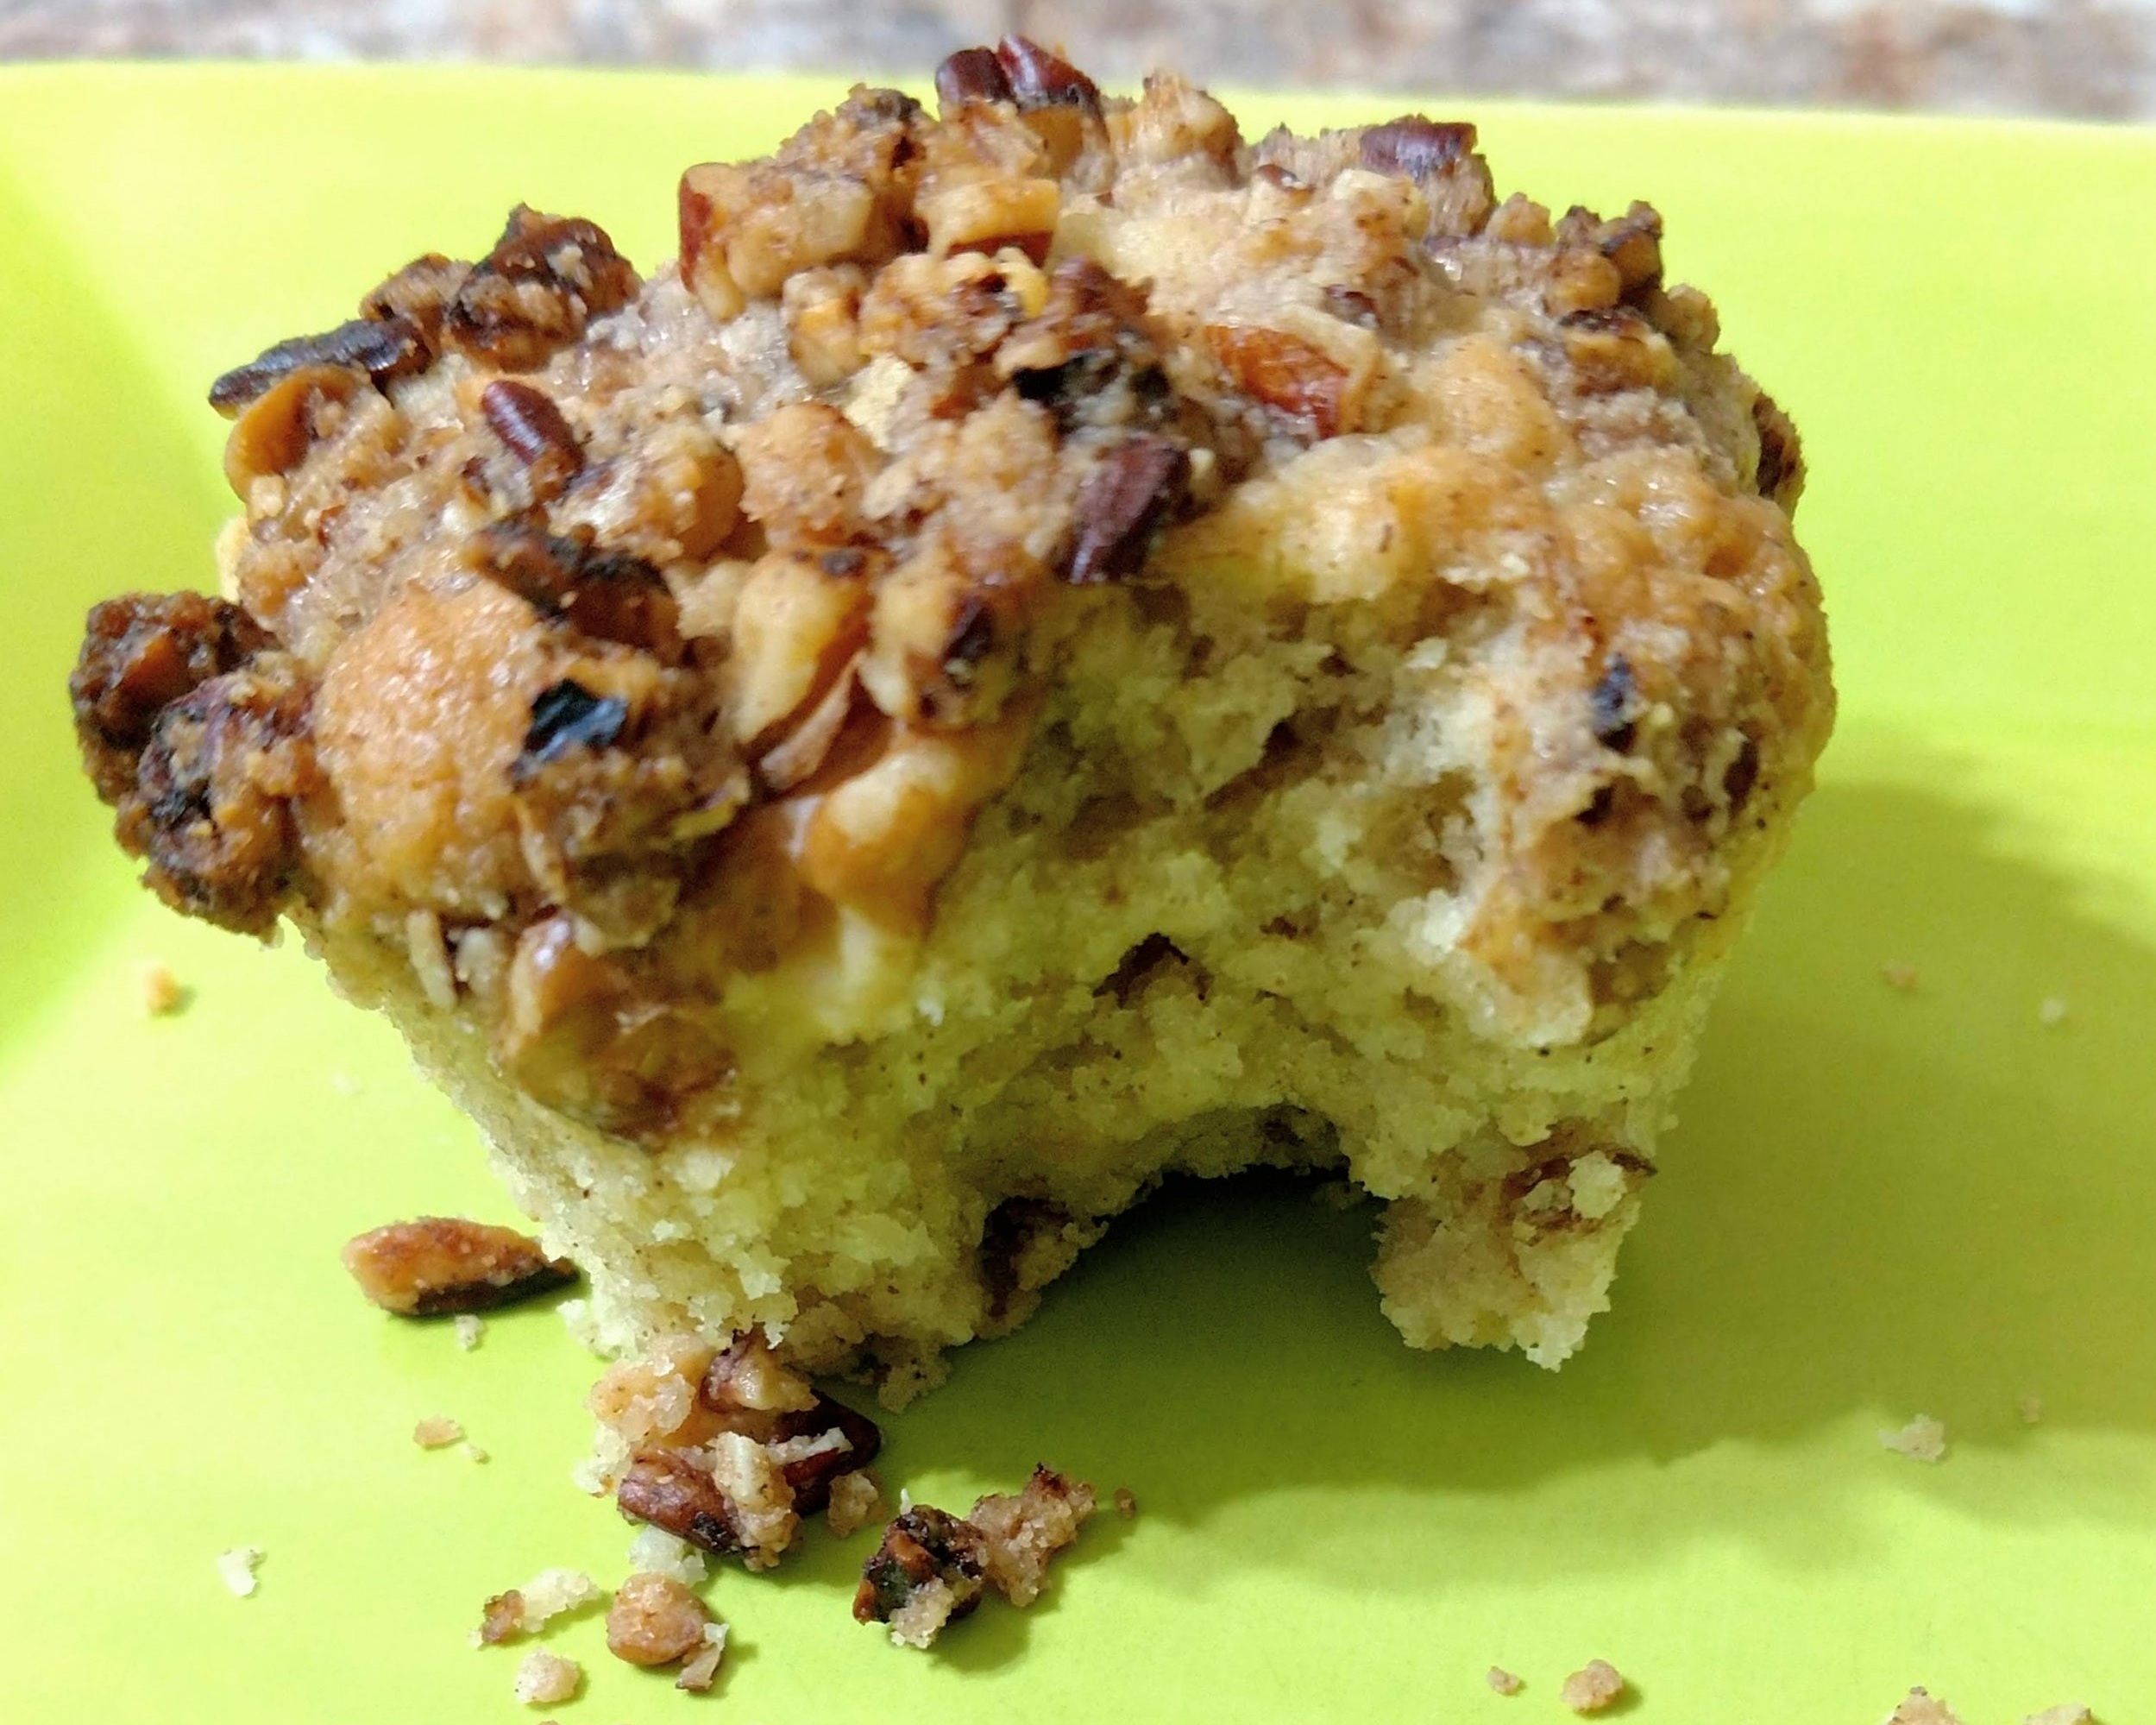 Banana Nut Muffin - Topped with a crunchy pecan streusel and filled with chopped walnuts!